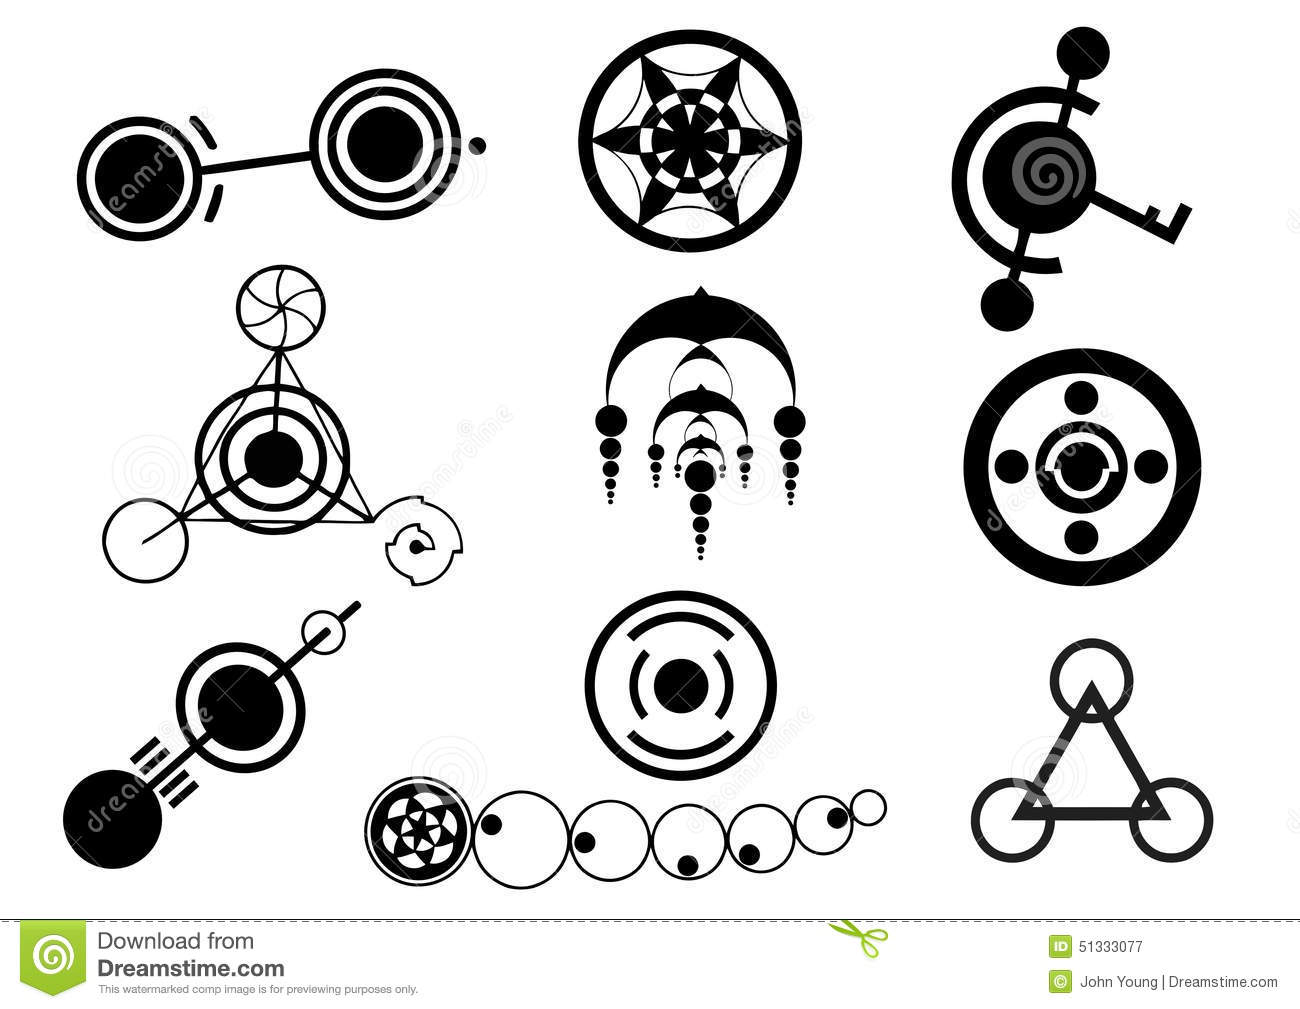 Crop Circles clipart #16, Download drawings